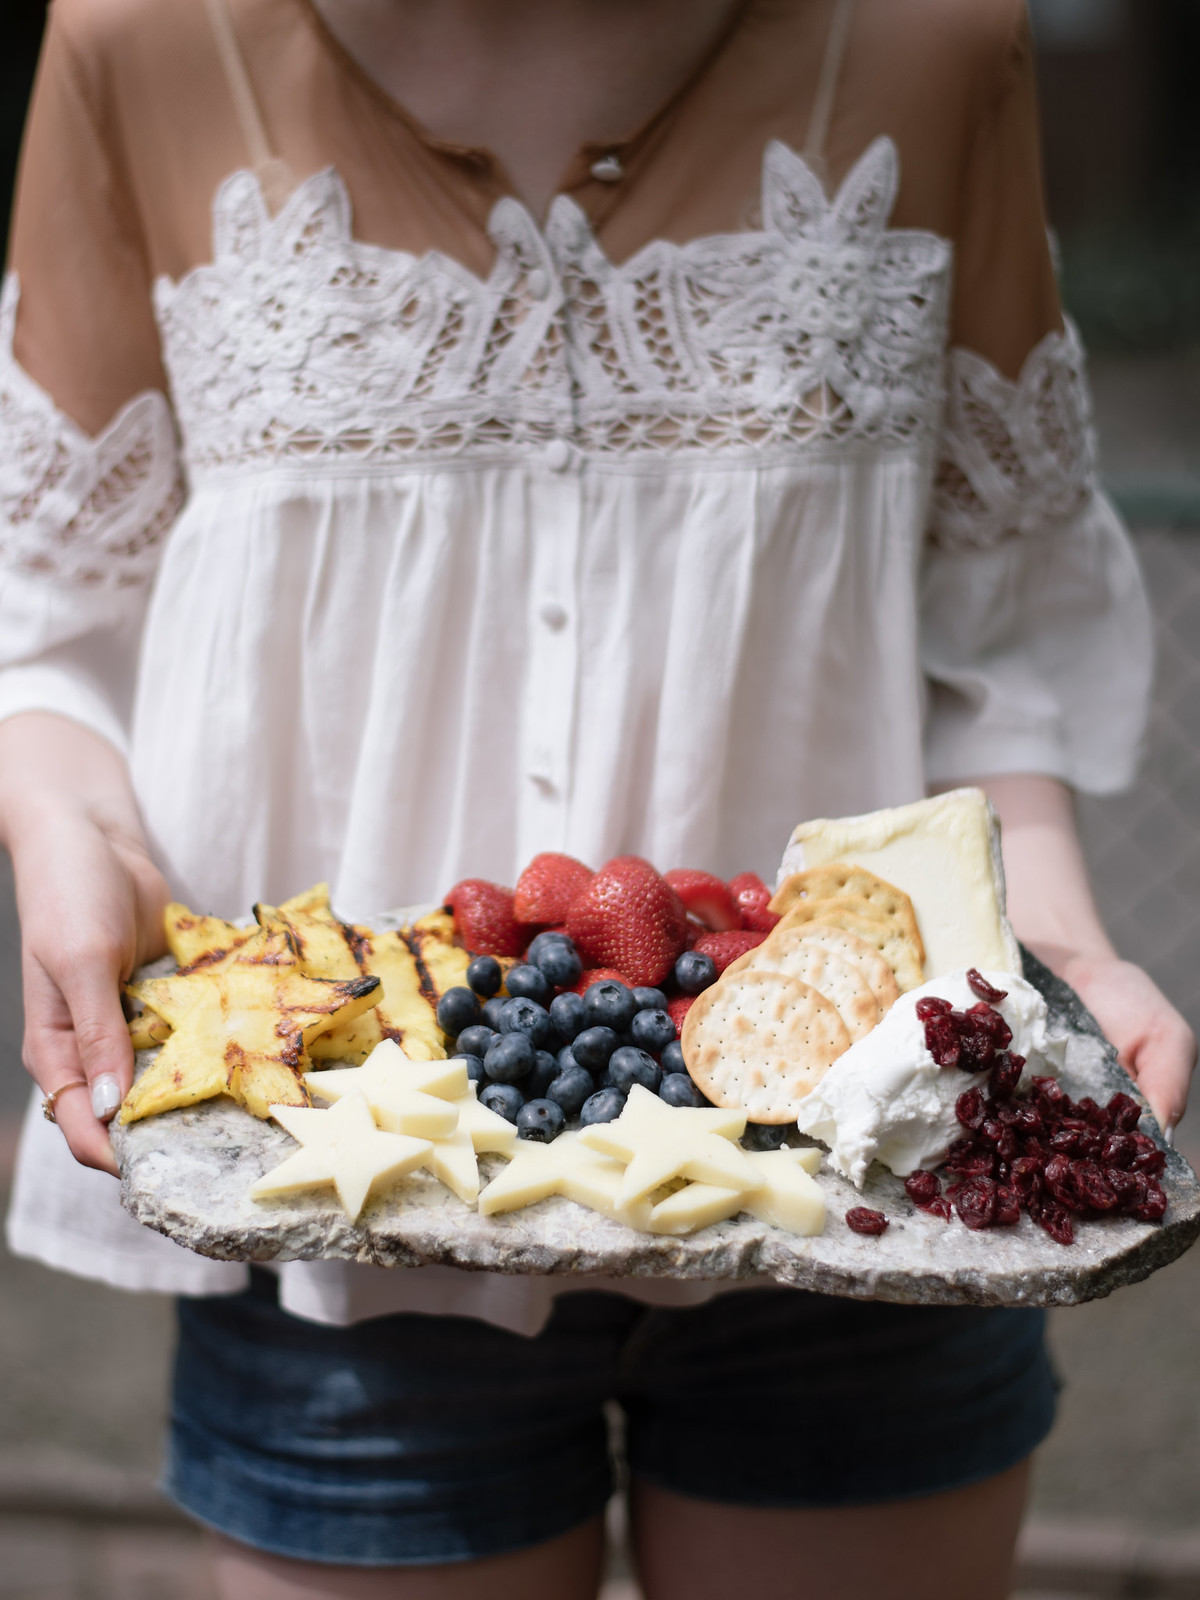 How To; Americana Inspired Fruit and Cheese Plate on juliettelaura.blogspot.com